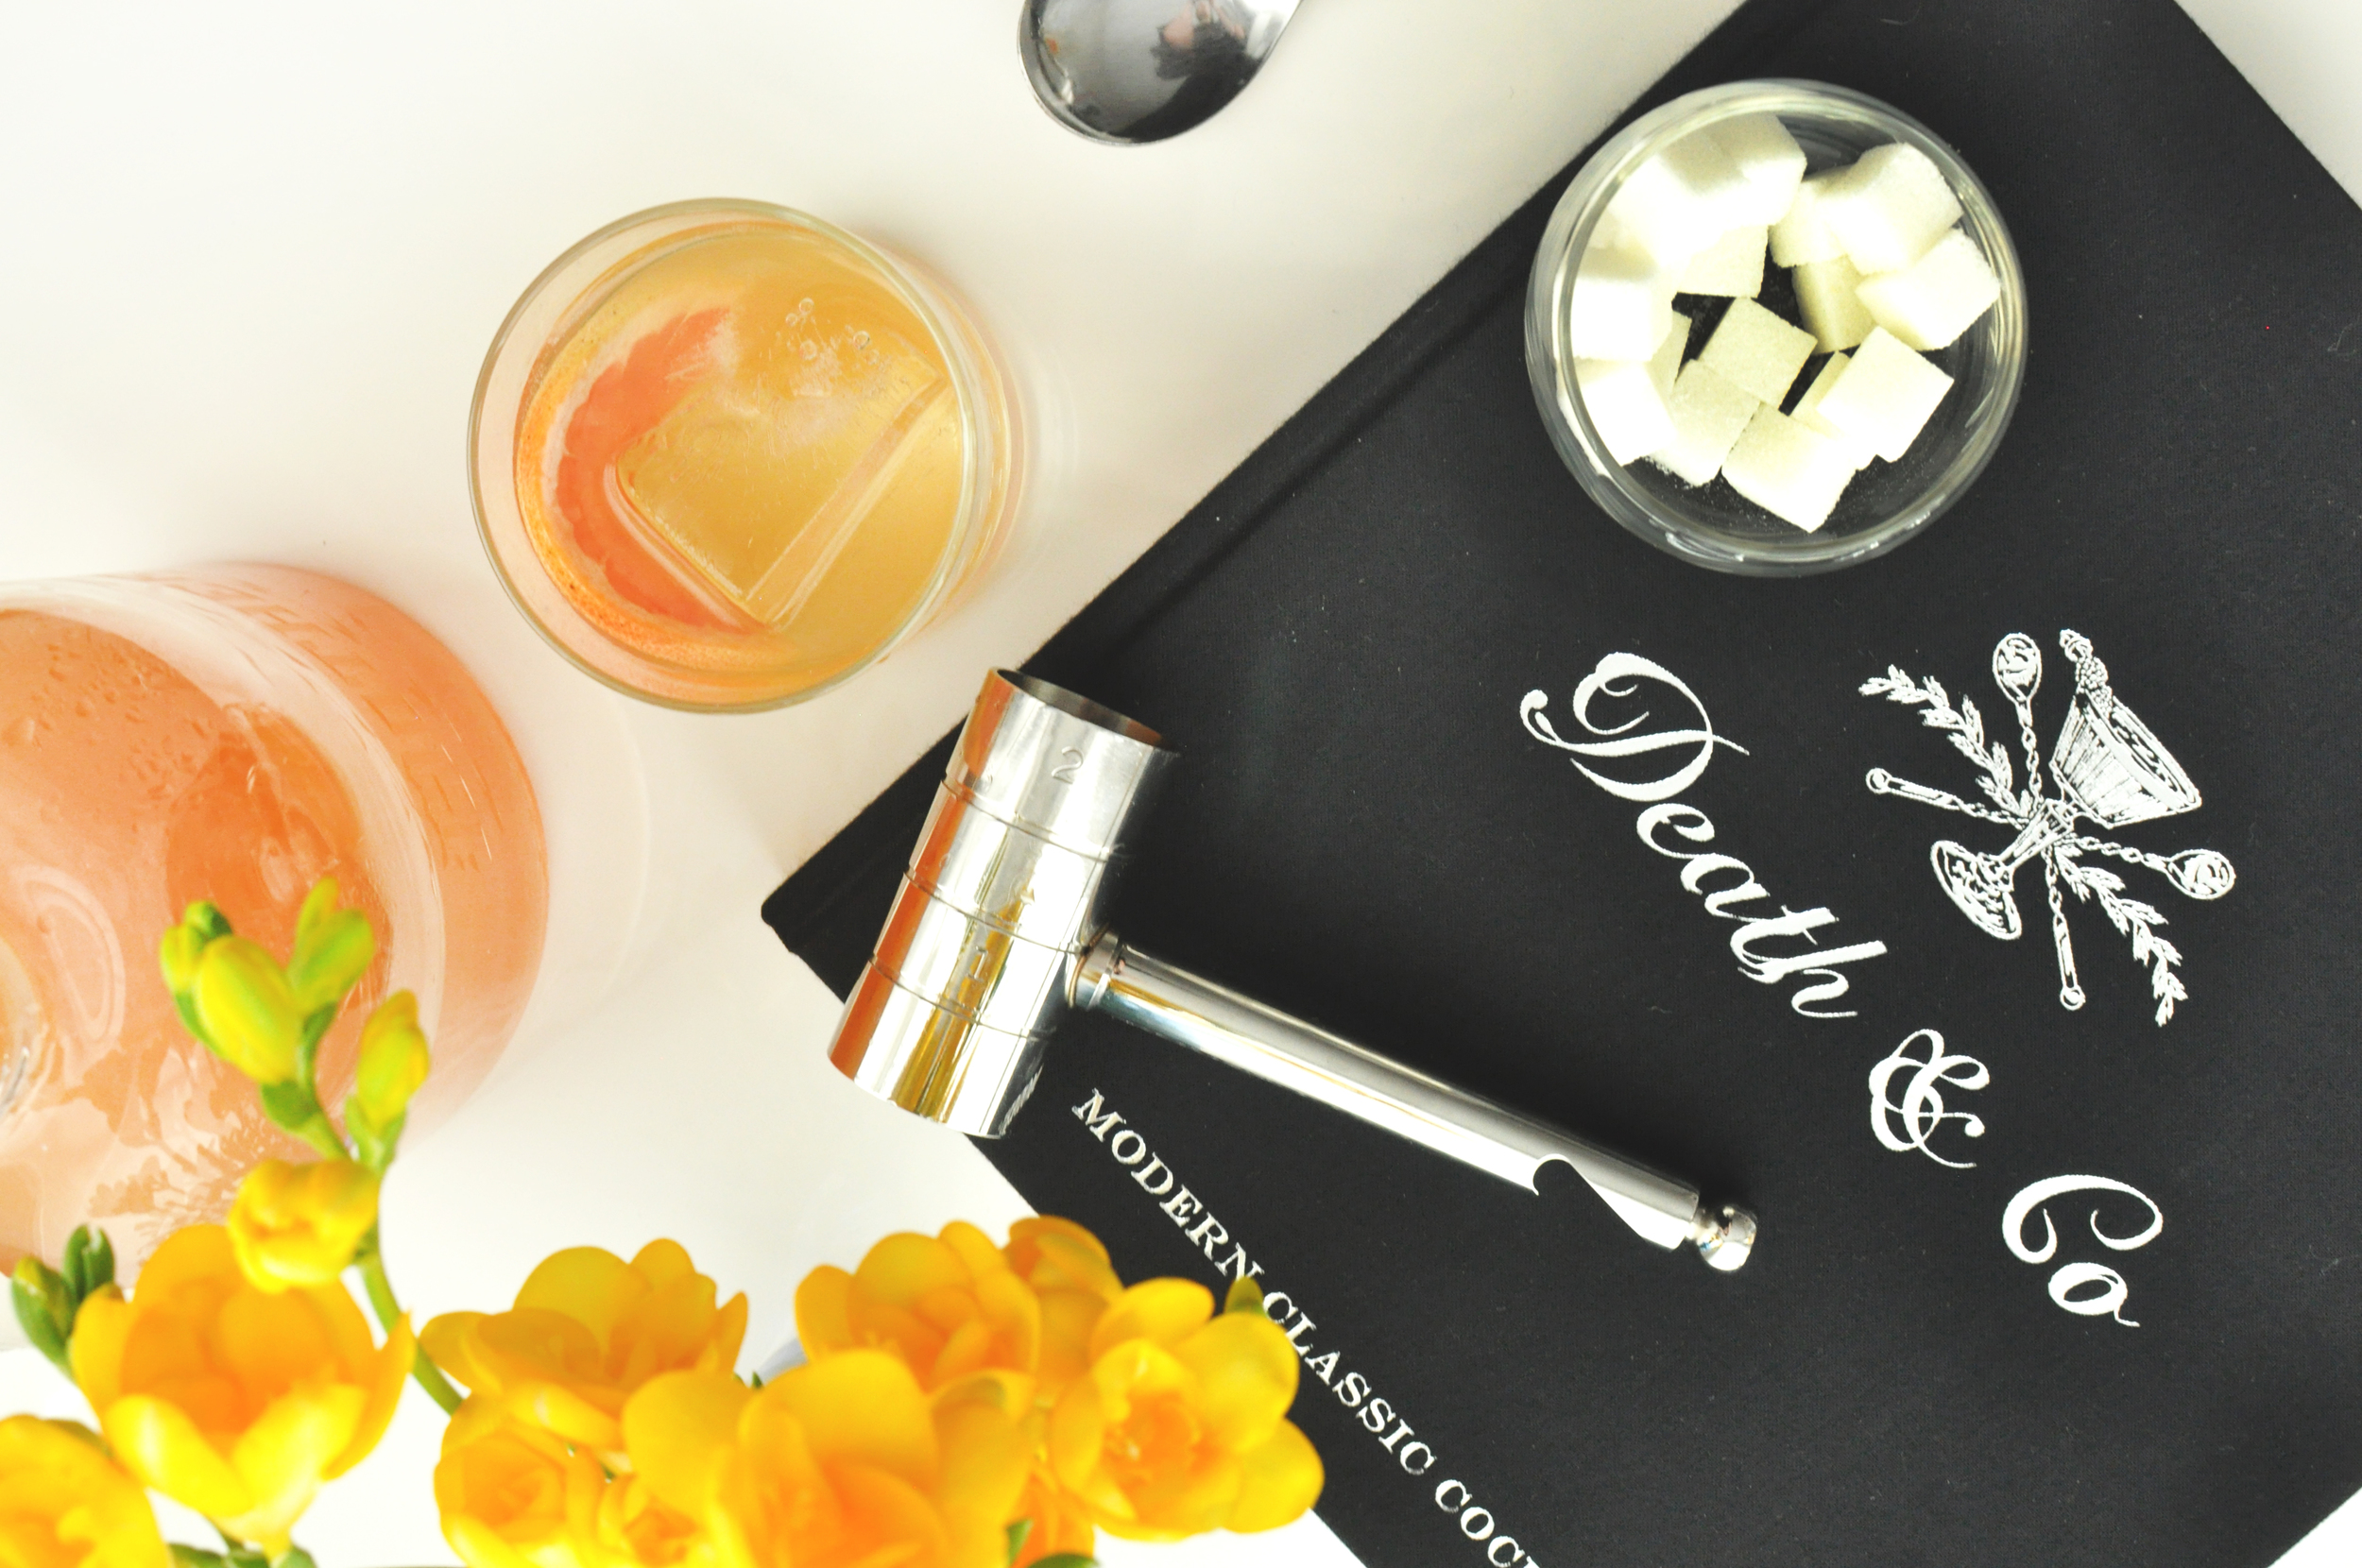 Death & Co Cocktail Book Punch Recipe Mother's Day